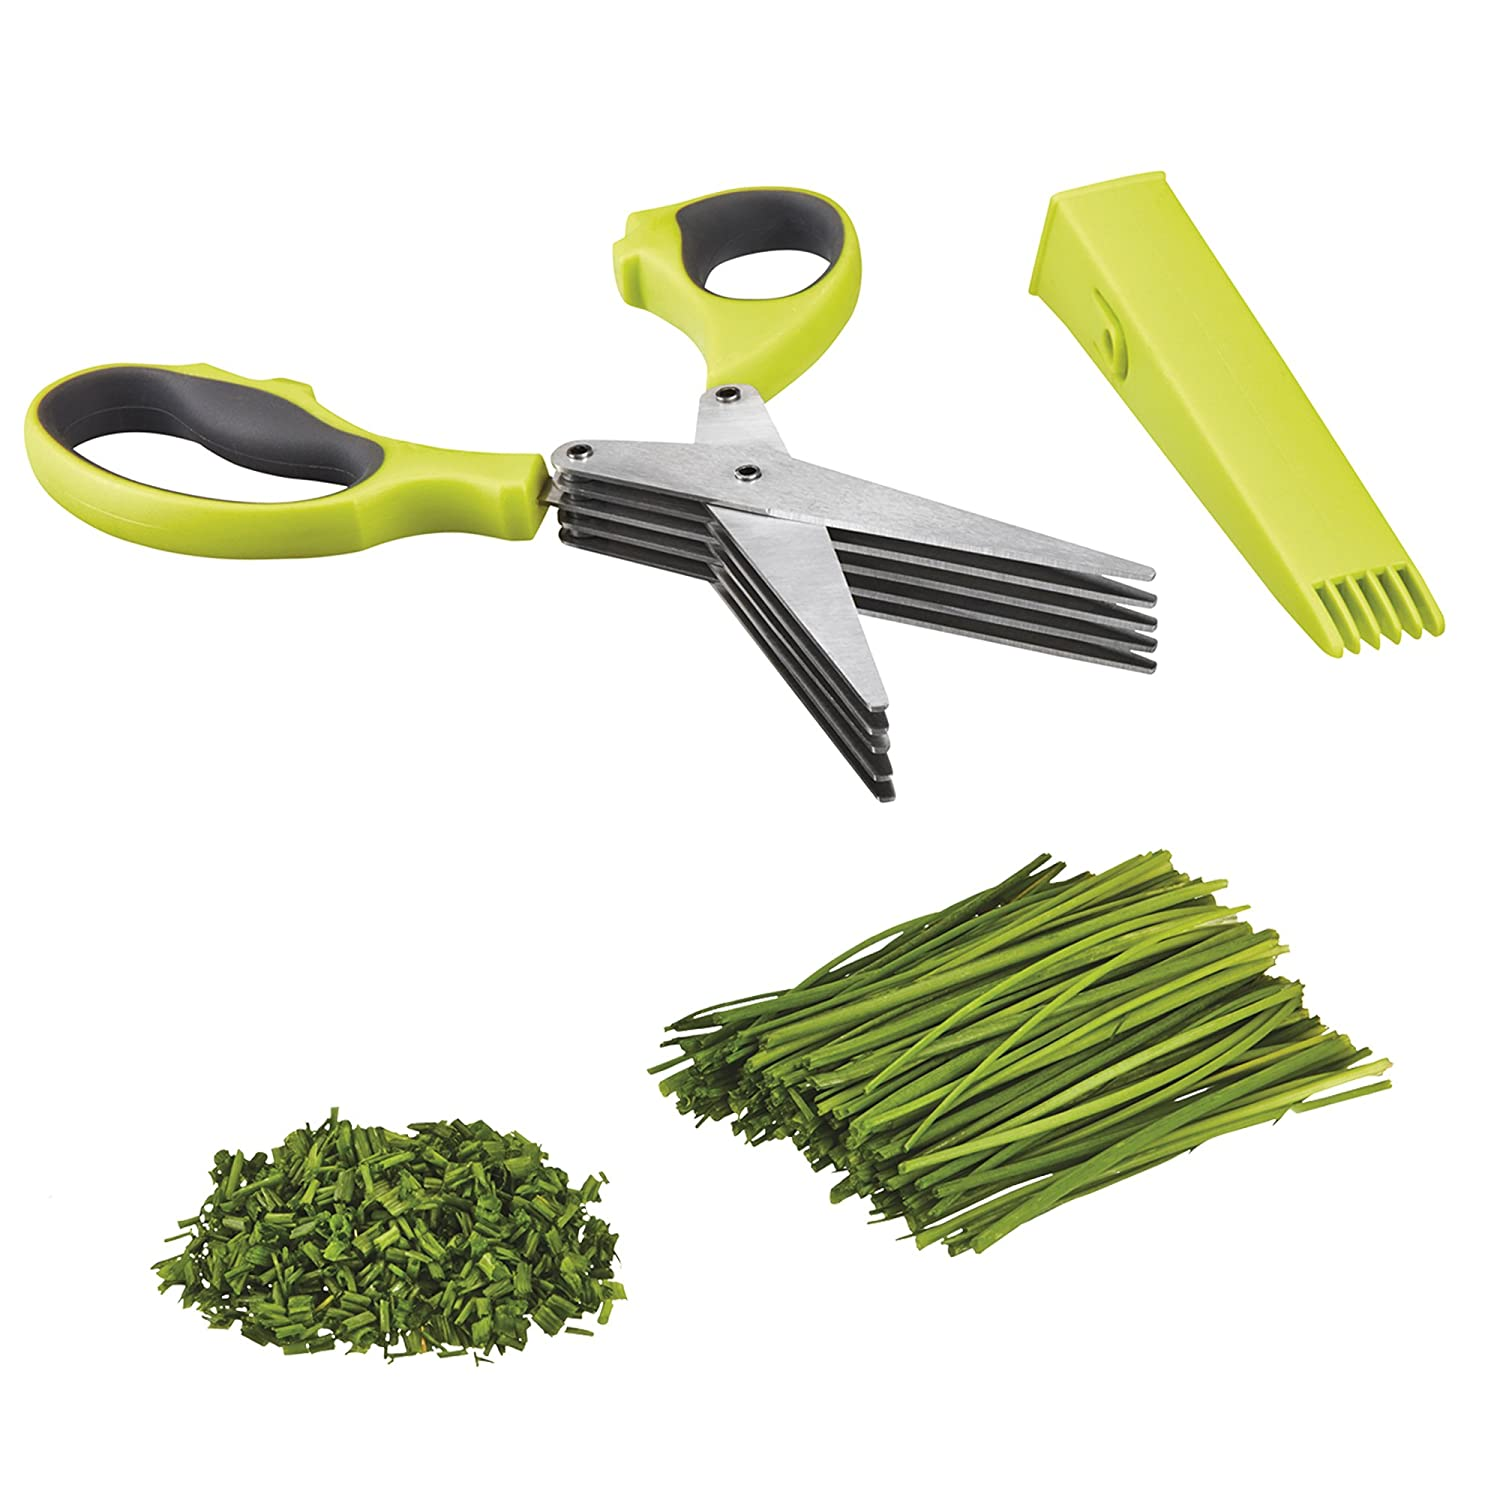 Garden Grow Herb Scissors Five Blade Multipurpose Cutters with Cover & Integrated Cleaner Clifford James